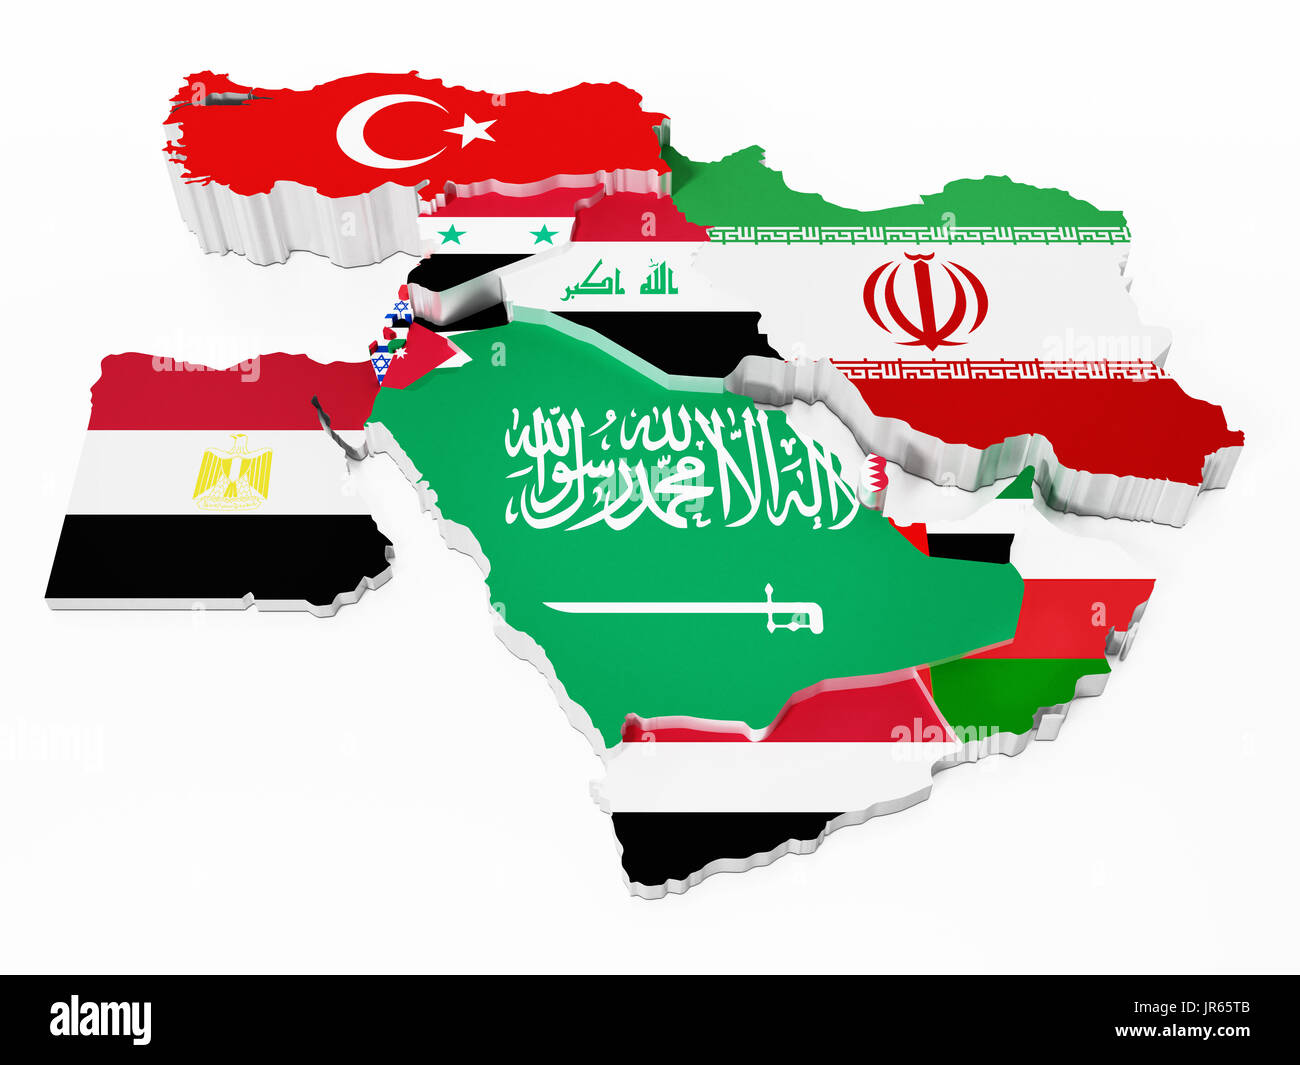 Middle East countries covered with country flags. 3D illustration. - Stock Image